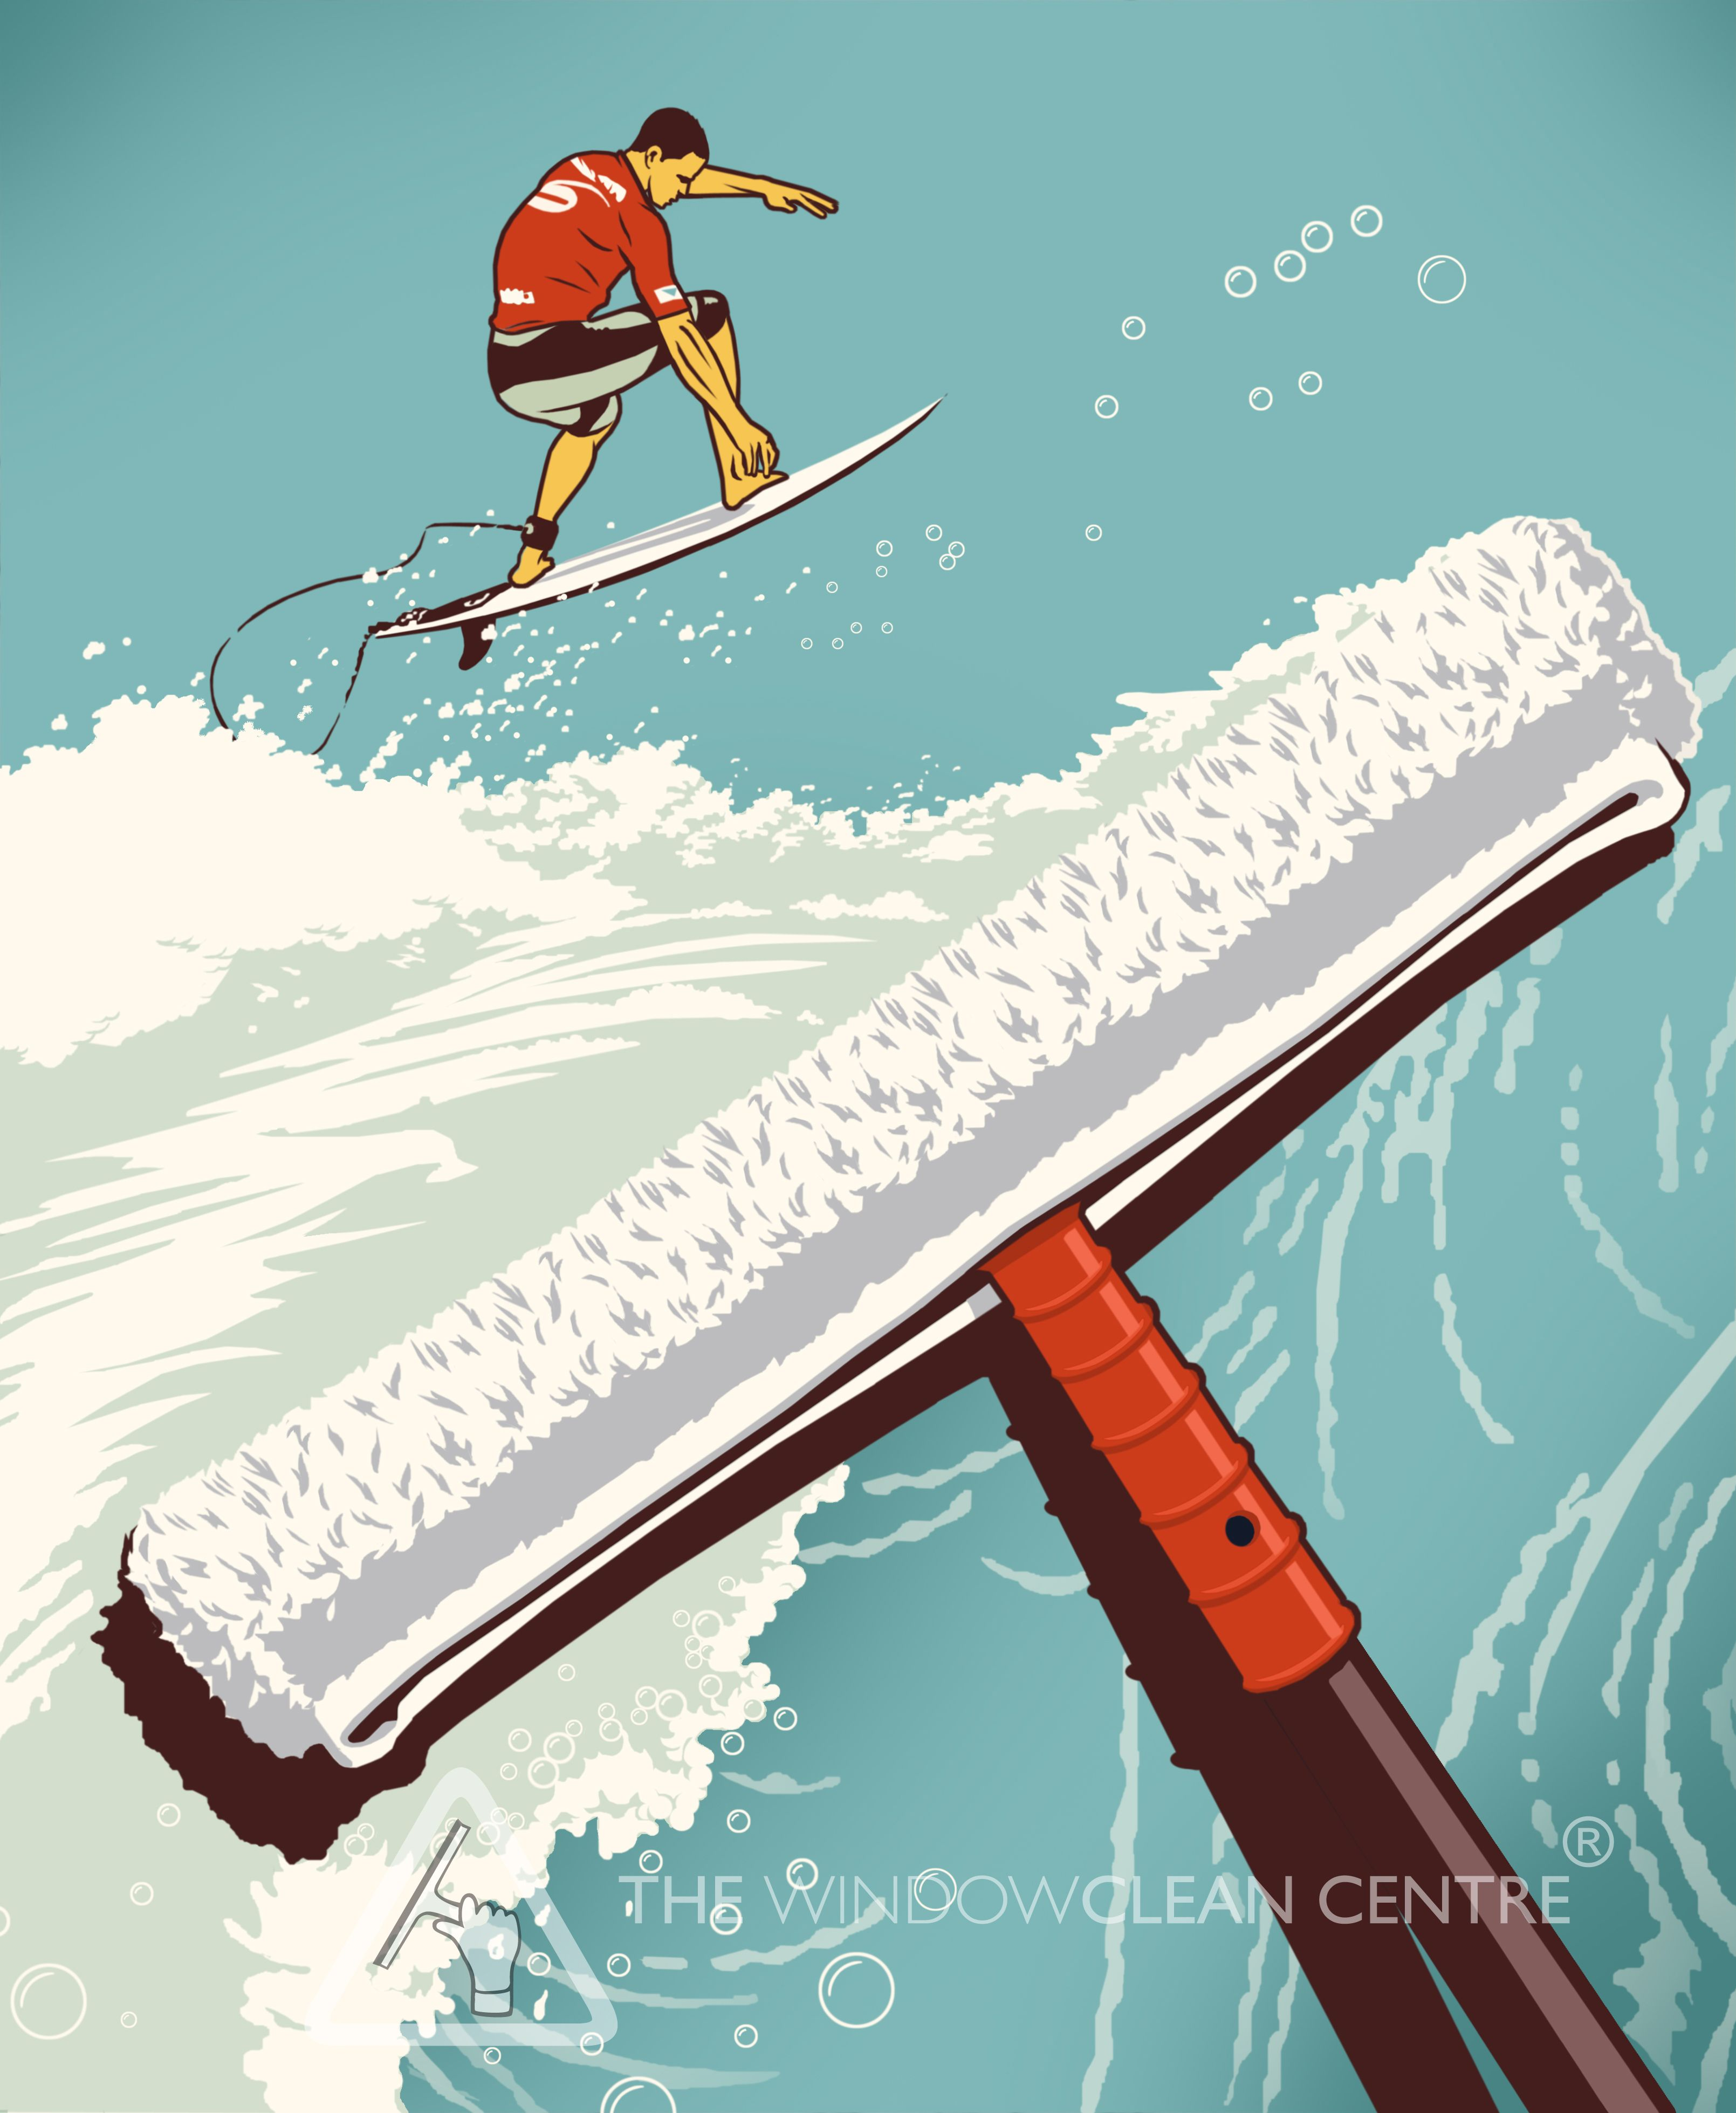 Illustration by Bill Butcher for The Windowclean Centre